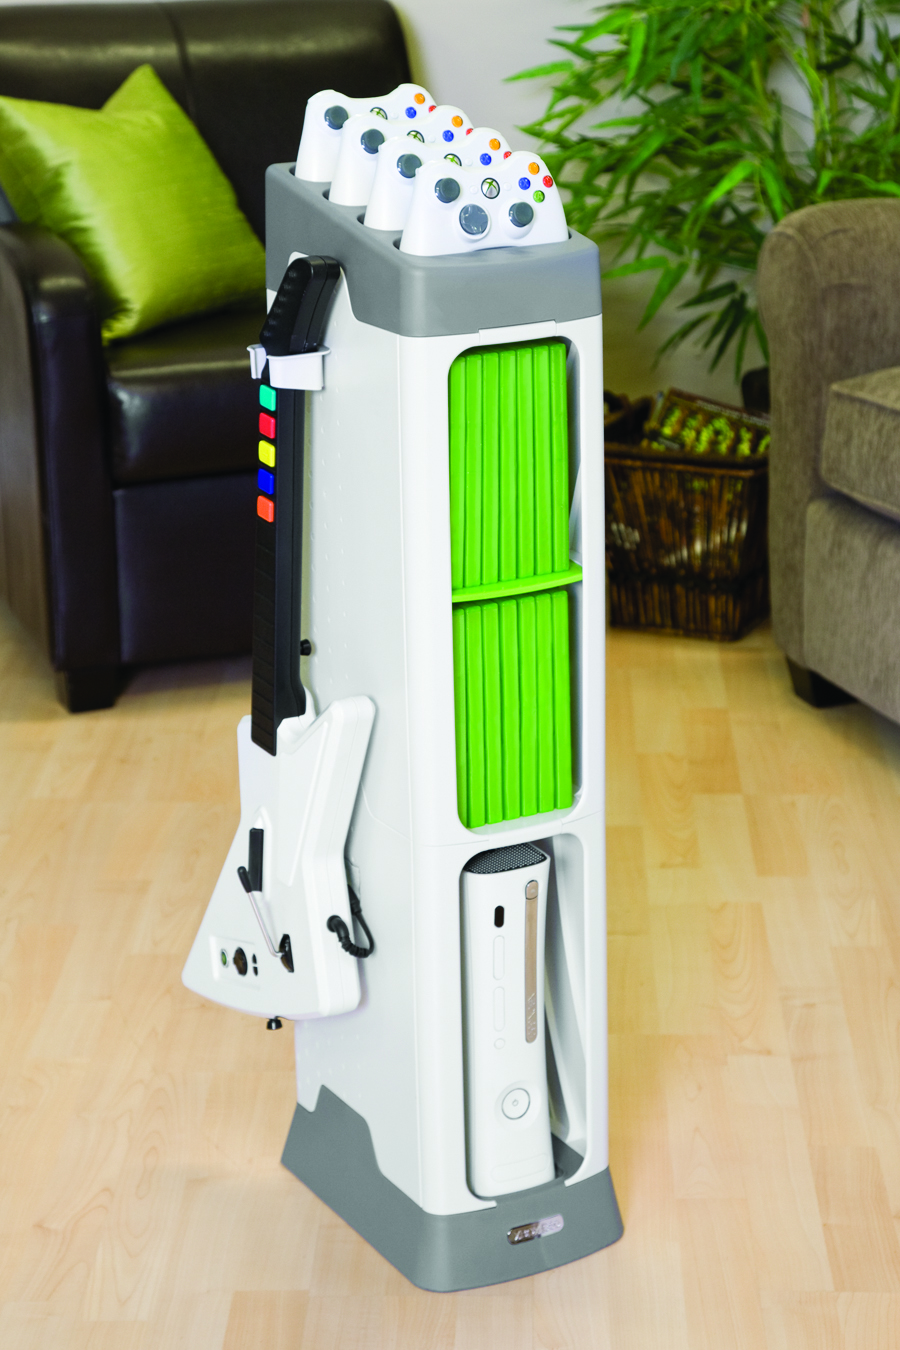 Xbox Generation Gaming Tower Is An All In One Storage Solution For Xbox  Console, Games And Accessories.xbox Generation ...